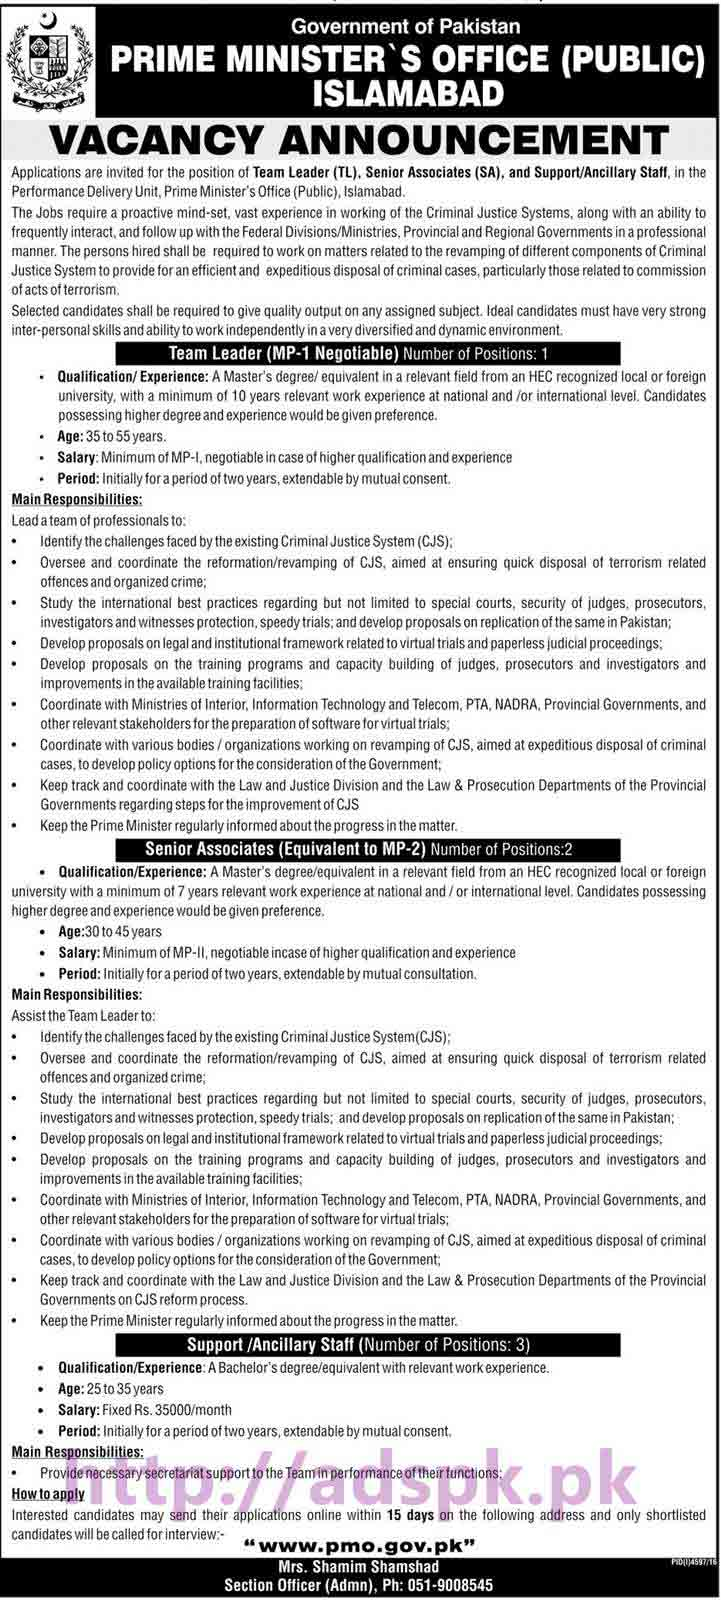 New Career PMO Excellent Jobs 2017 Prime Minister's Performance Delivery Unit Prime Minister's Office (Public) Islamabad Pakistan Govt. Jobs for Team Leader (TL) Senior Associates (SA) and Support Ancillary Staff Application Form Deadline 22-03-2017 Complete Details Apply Online Now